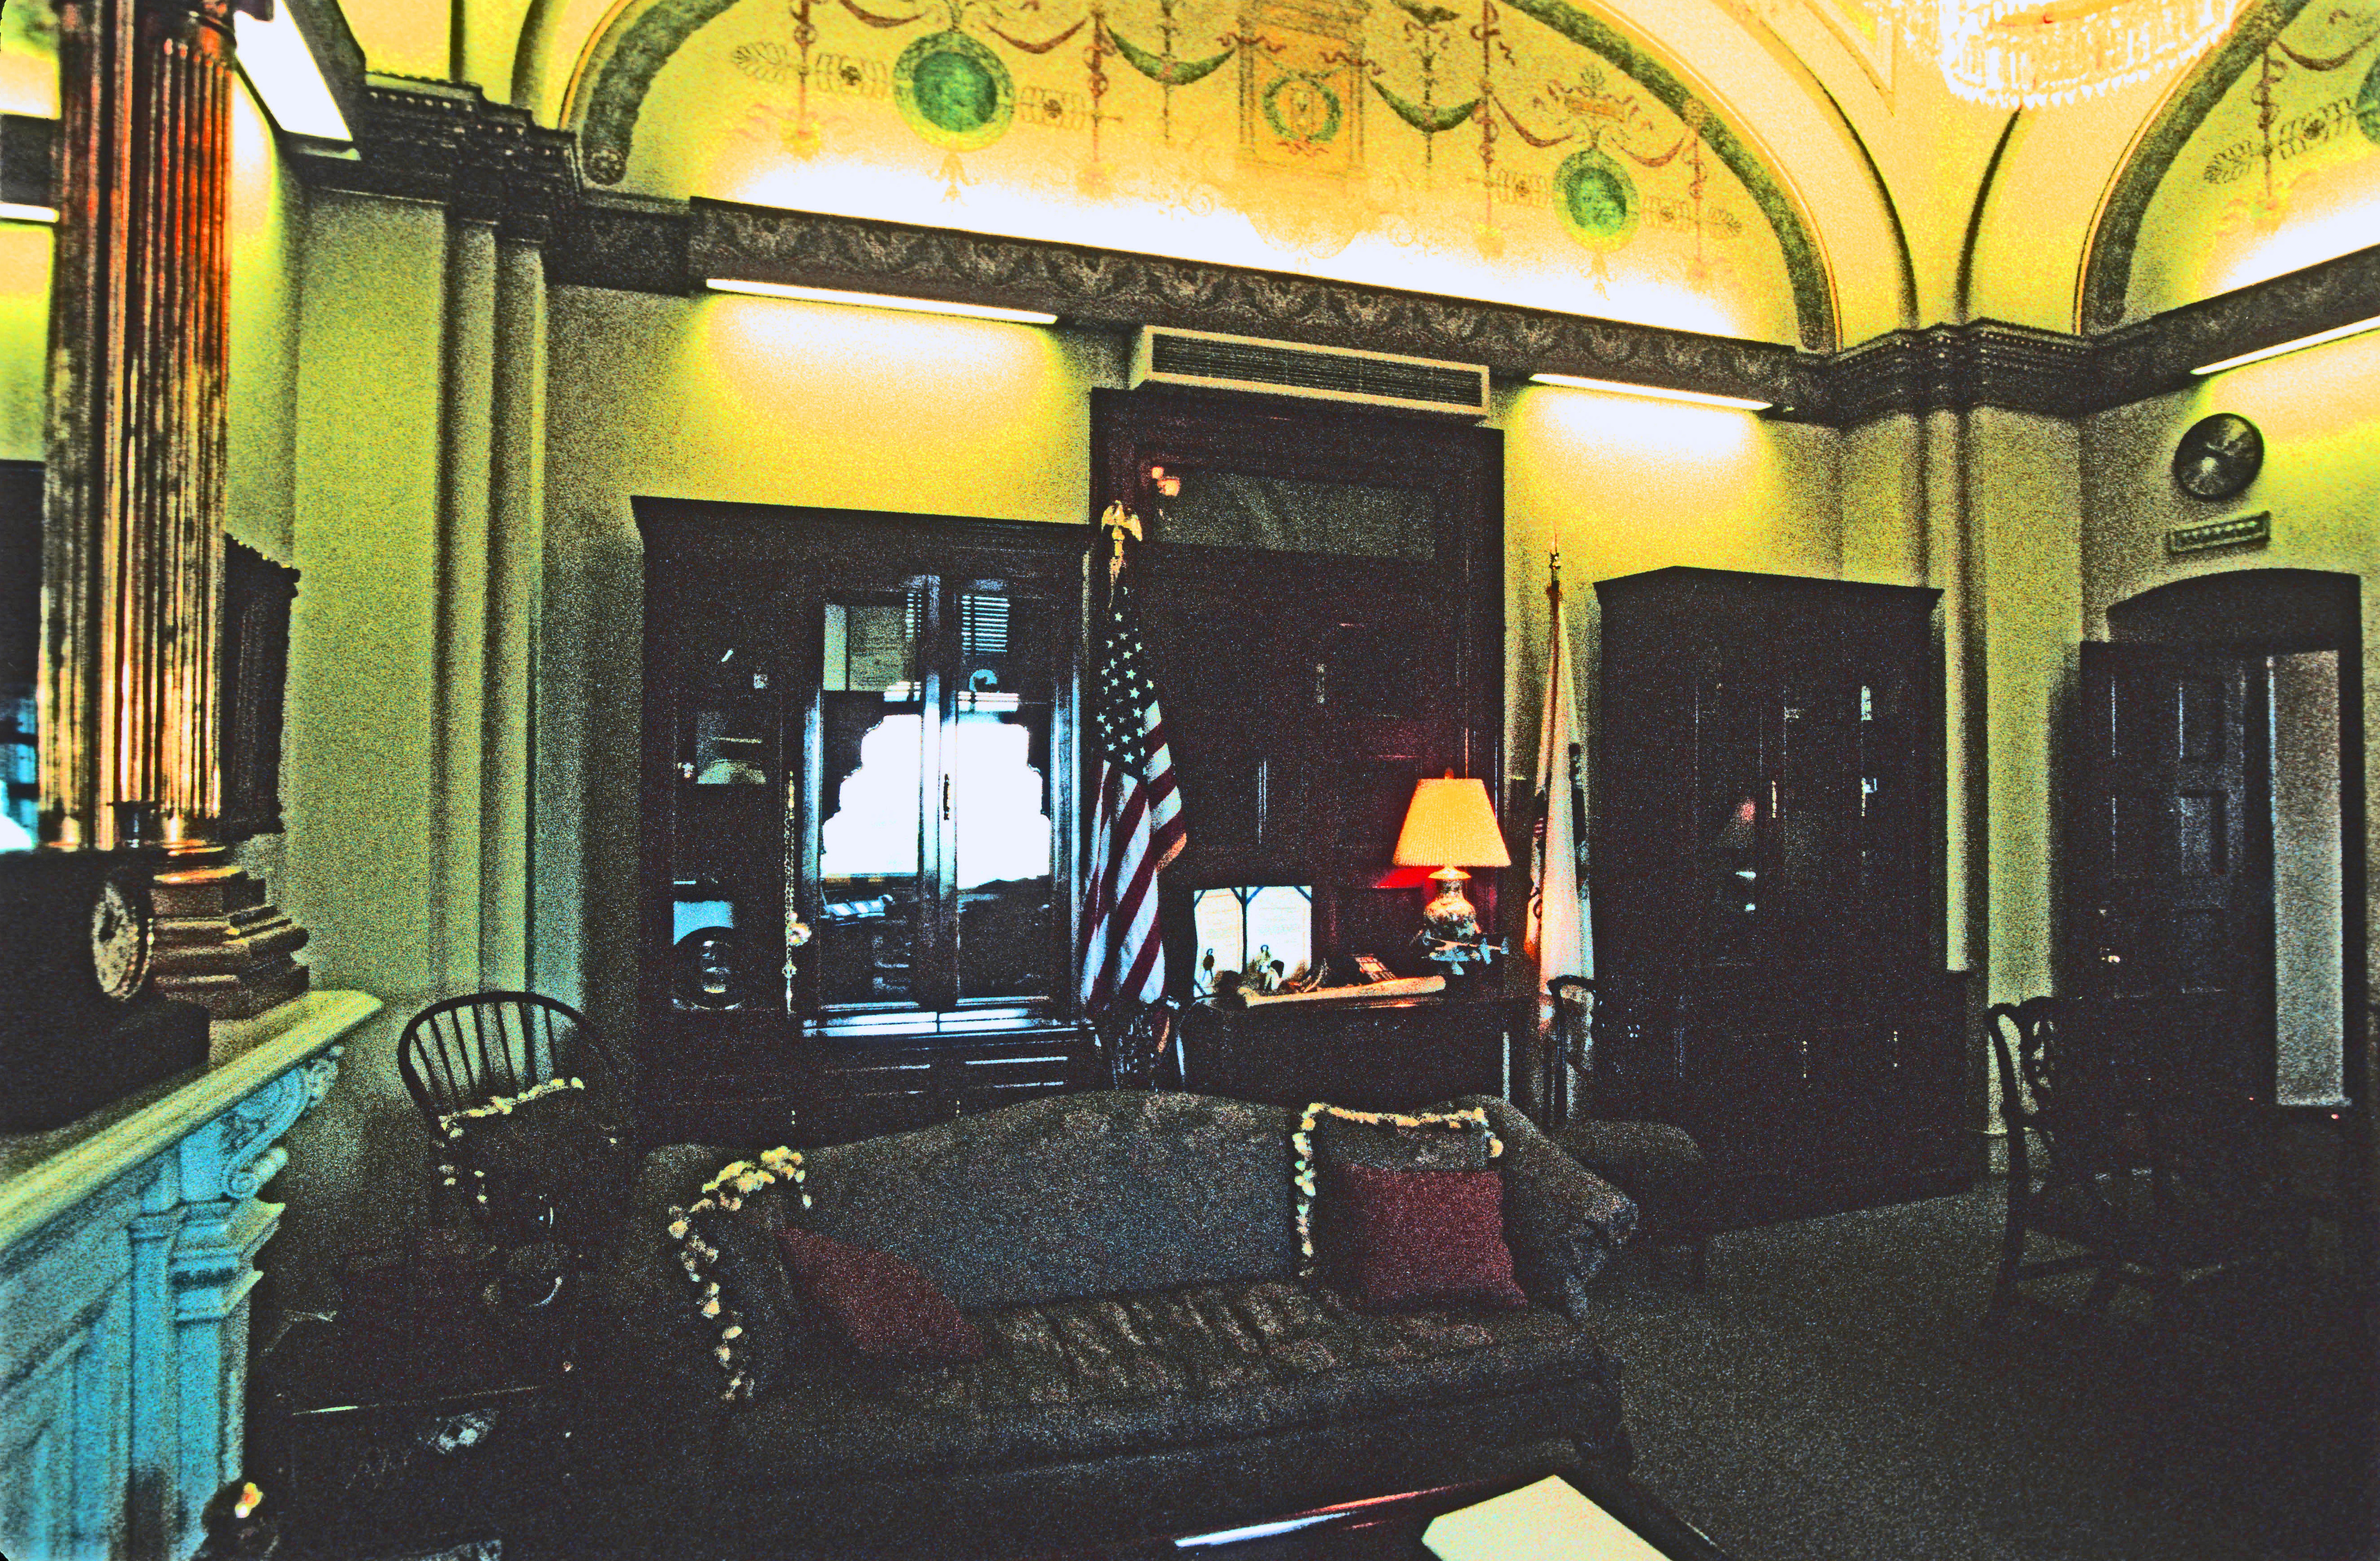 Living Room Pictures Of The House speaker of the united states house representatives wikiwand